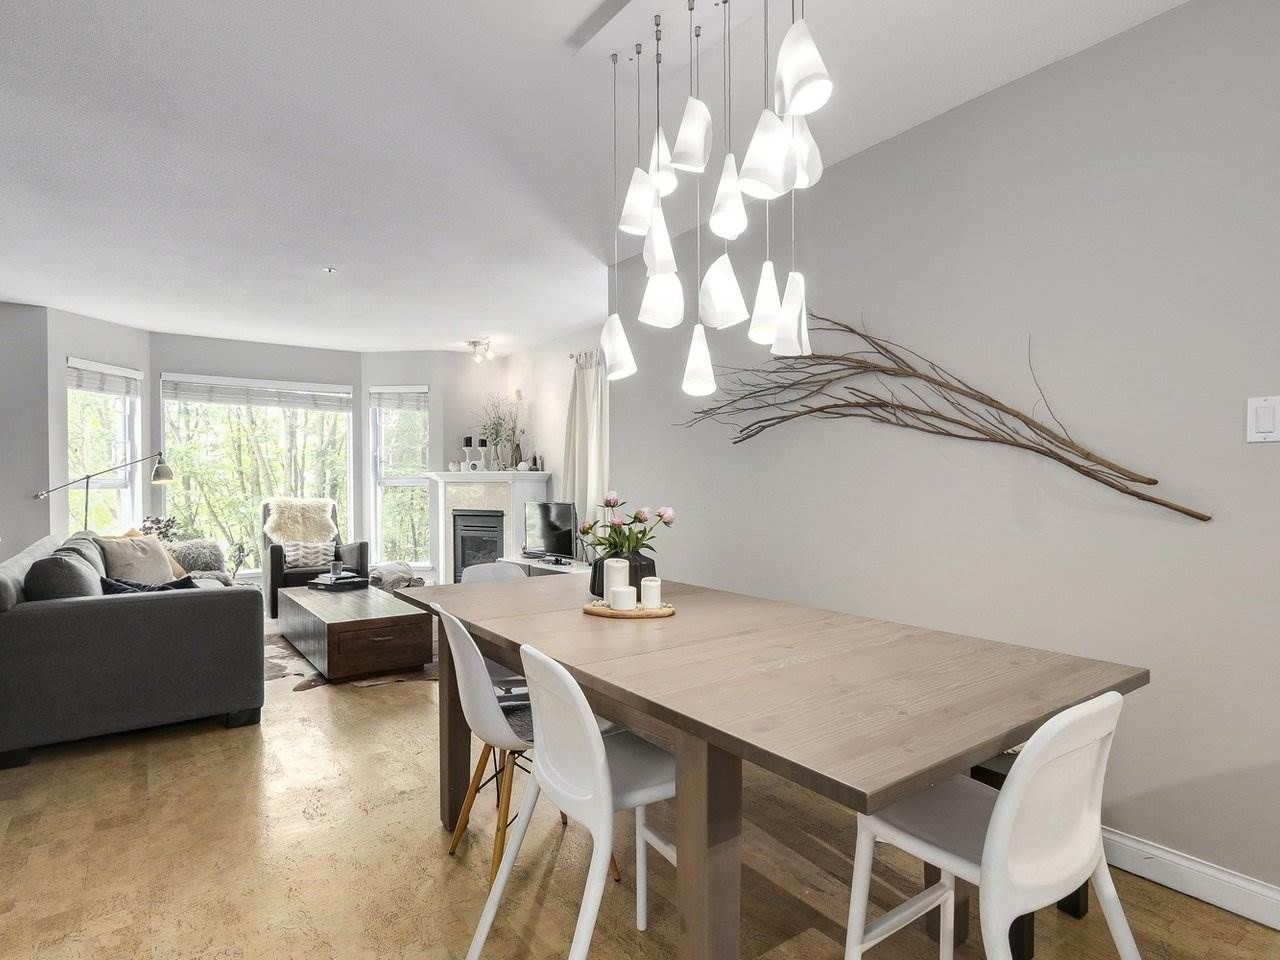 Photo 6: Photos: 305 225 E 19TH AVENUE in Vancouver: Main Condo for sale (Vancouver East)  : MLS®# R2173702